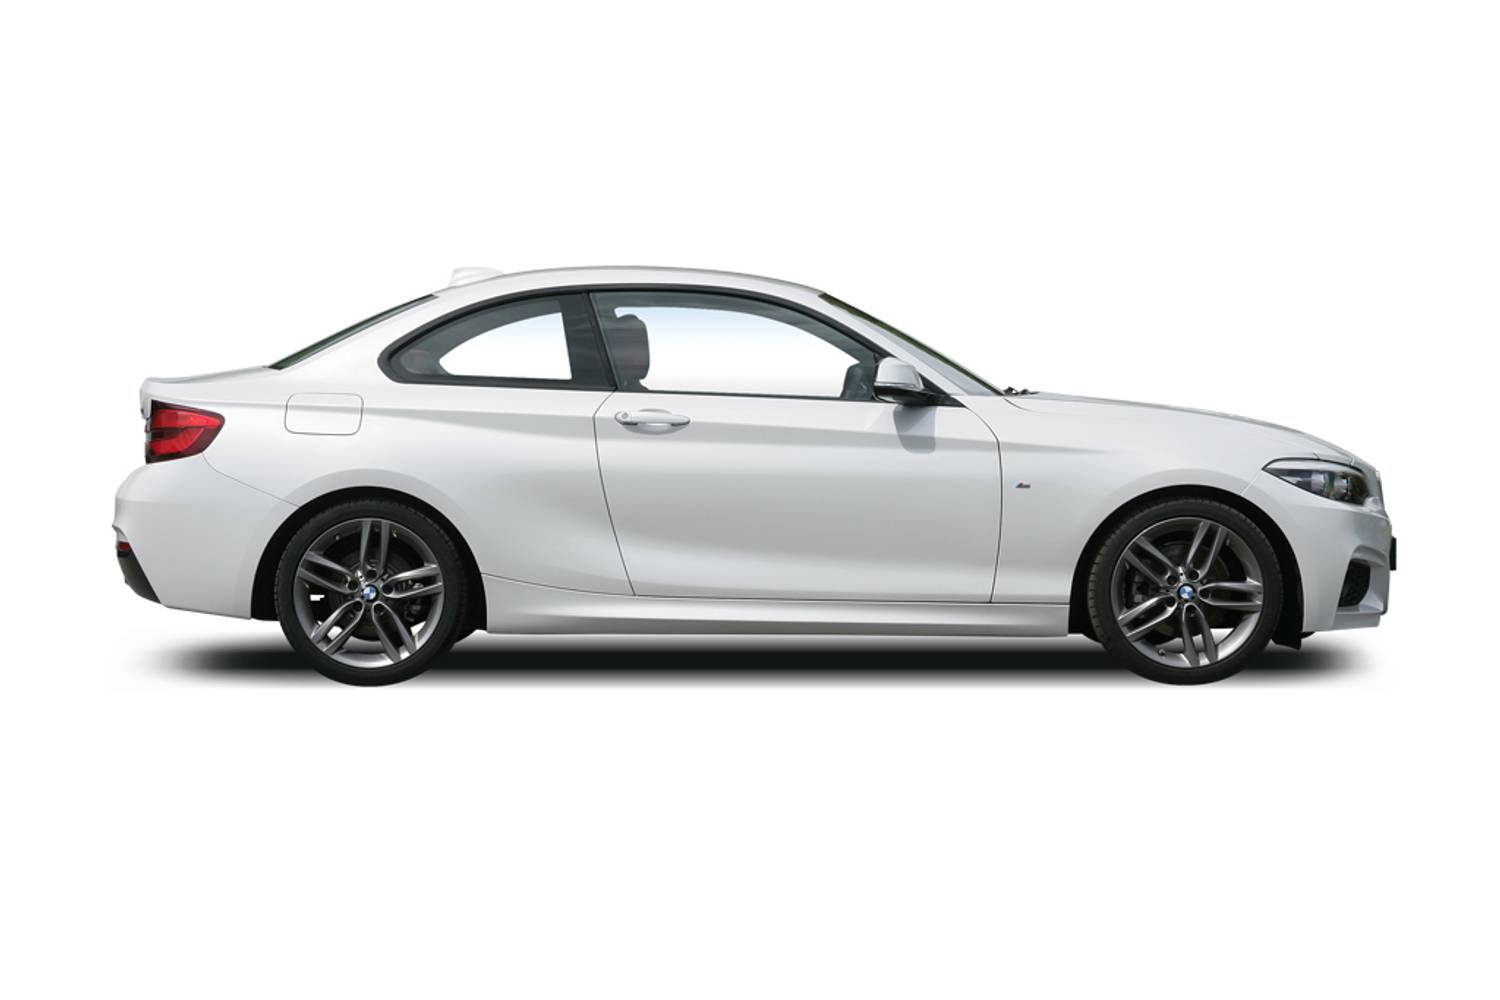 BMW 2 Series Coupe 2dr [Nav] Profile